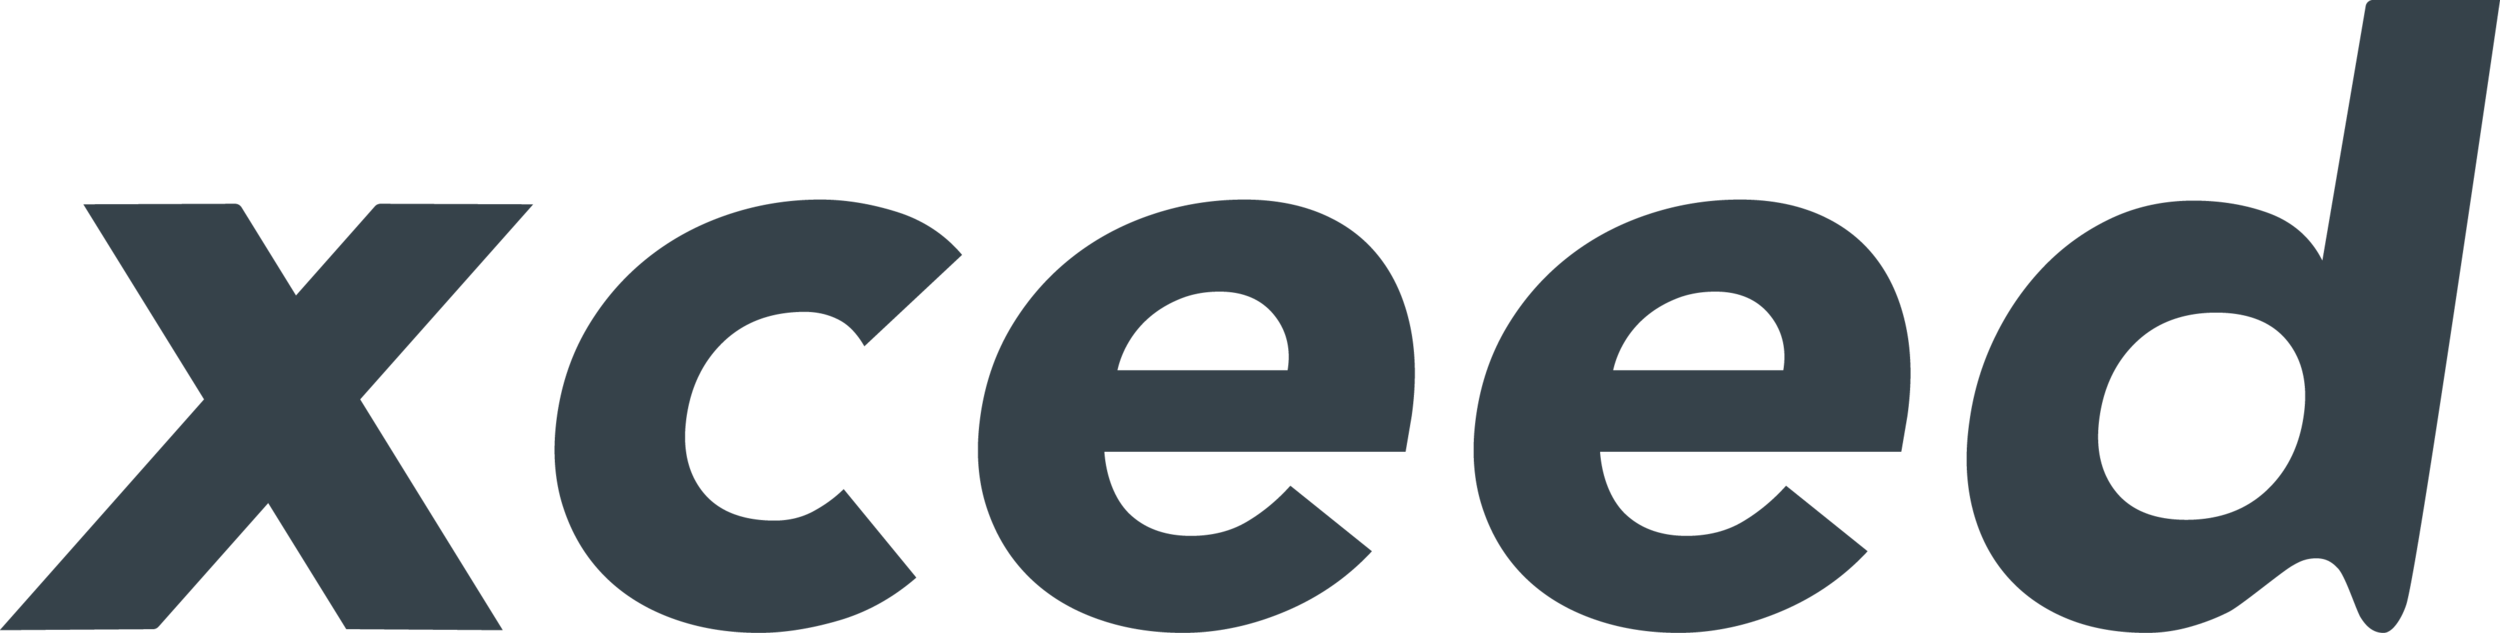 Xceed Logo Black.png